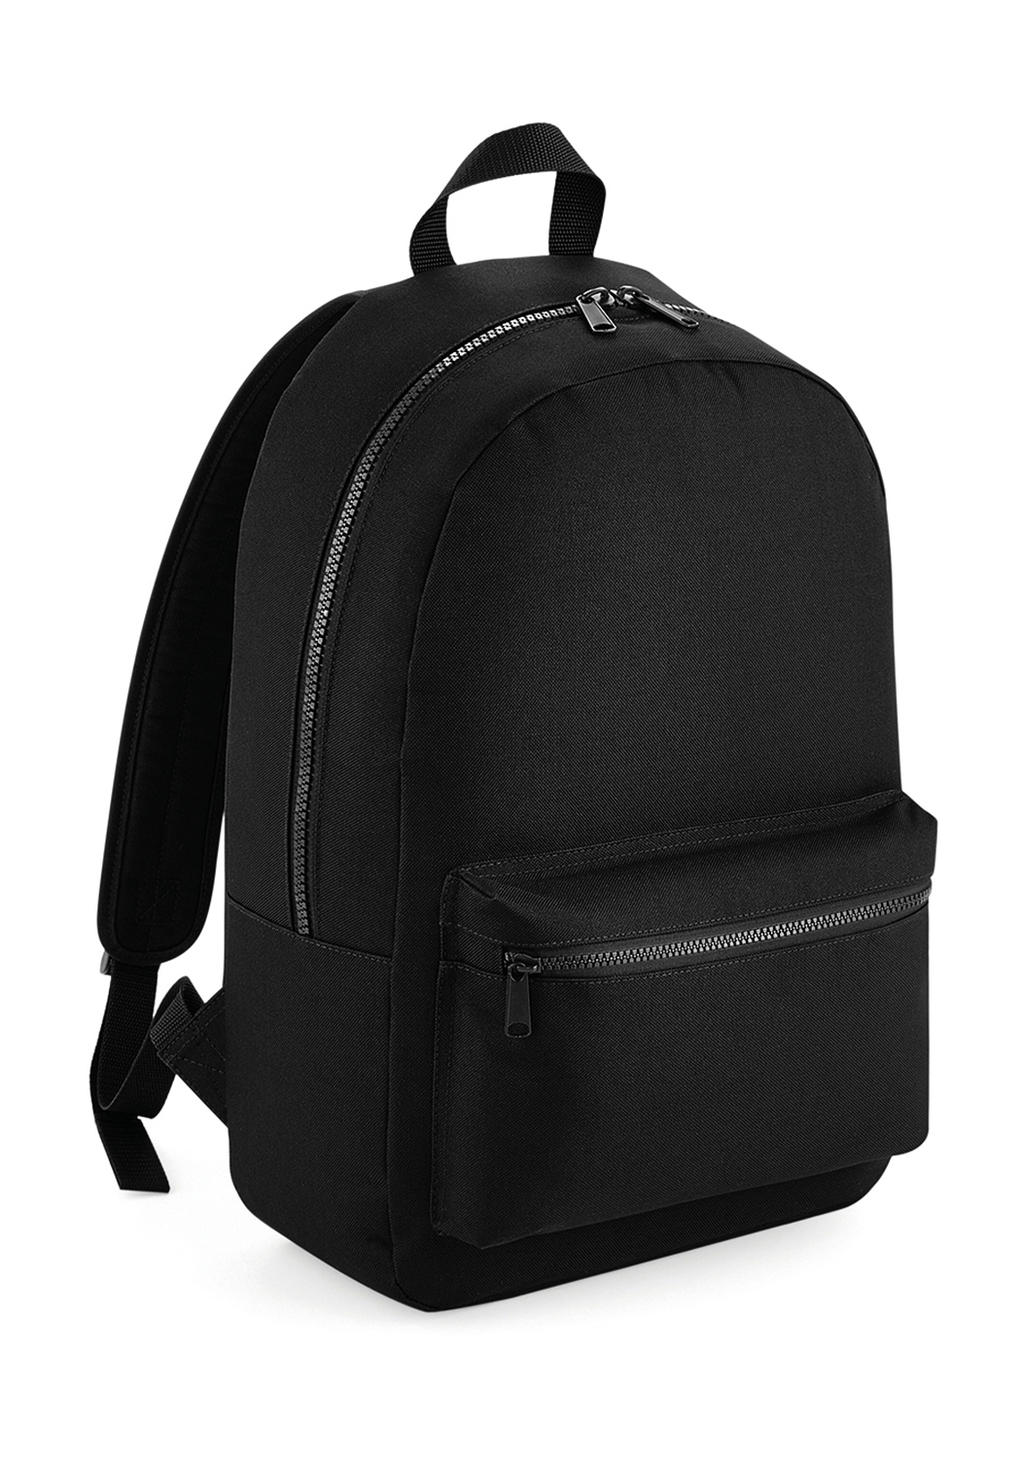 Essential Fashion Backpack